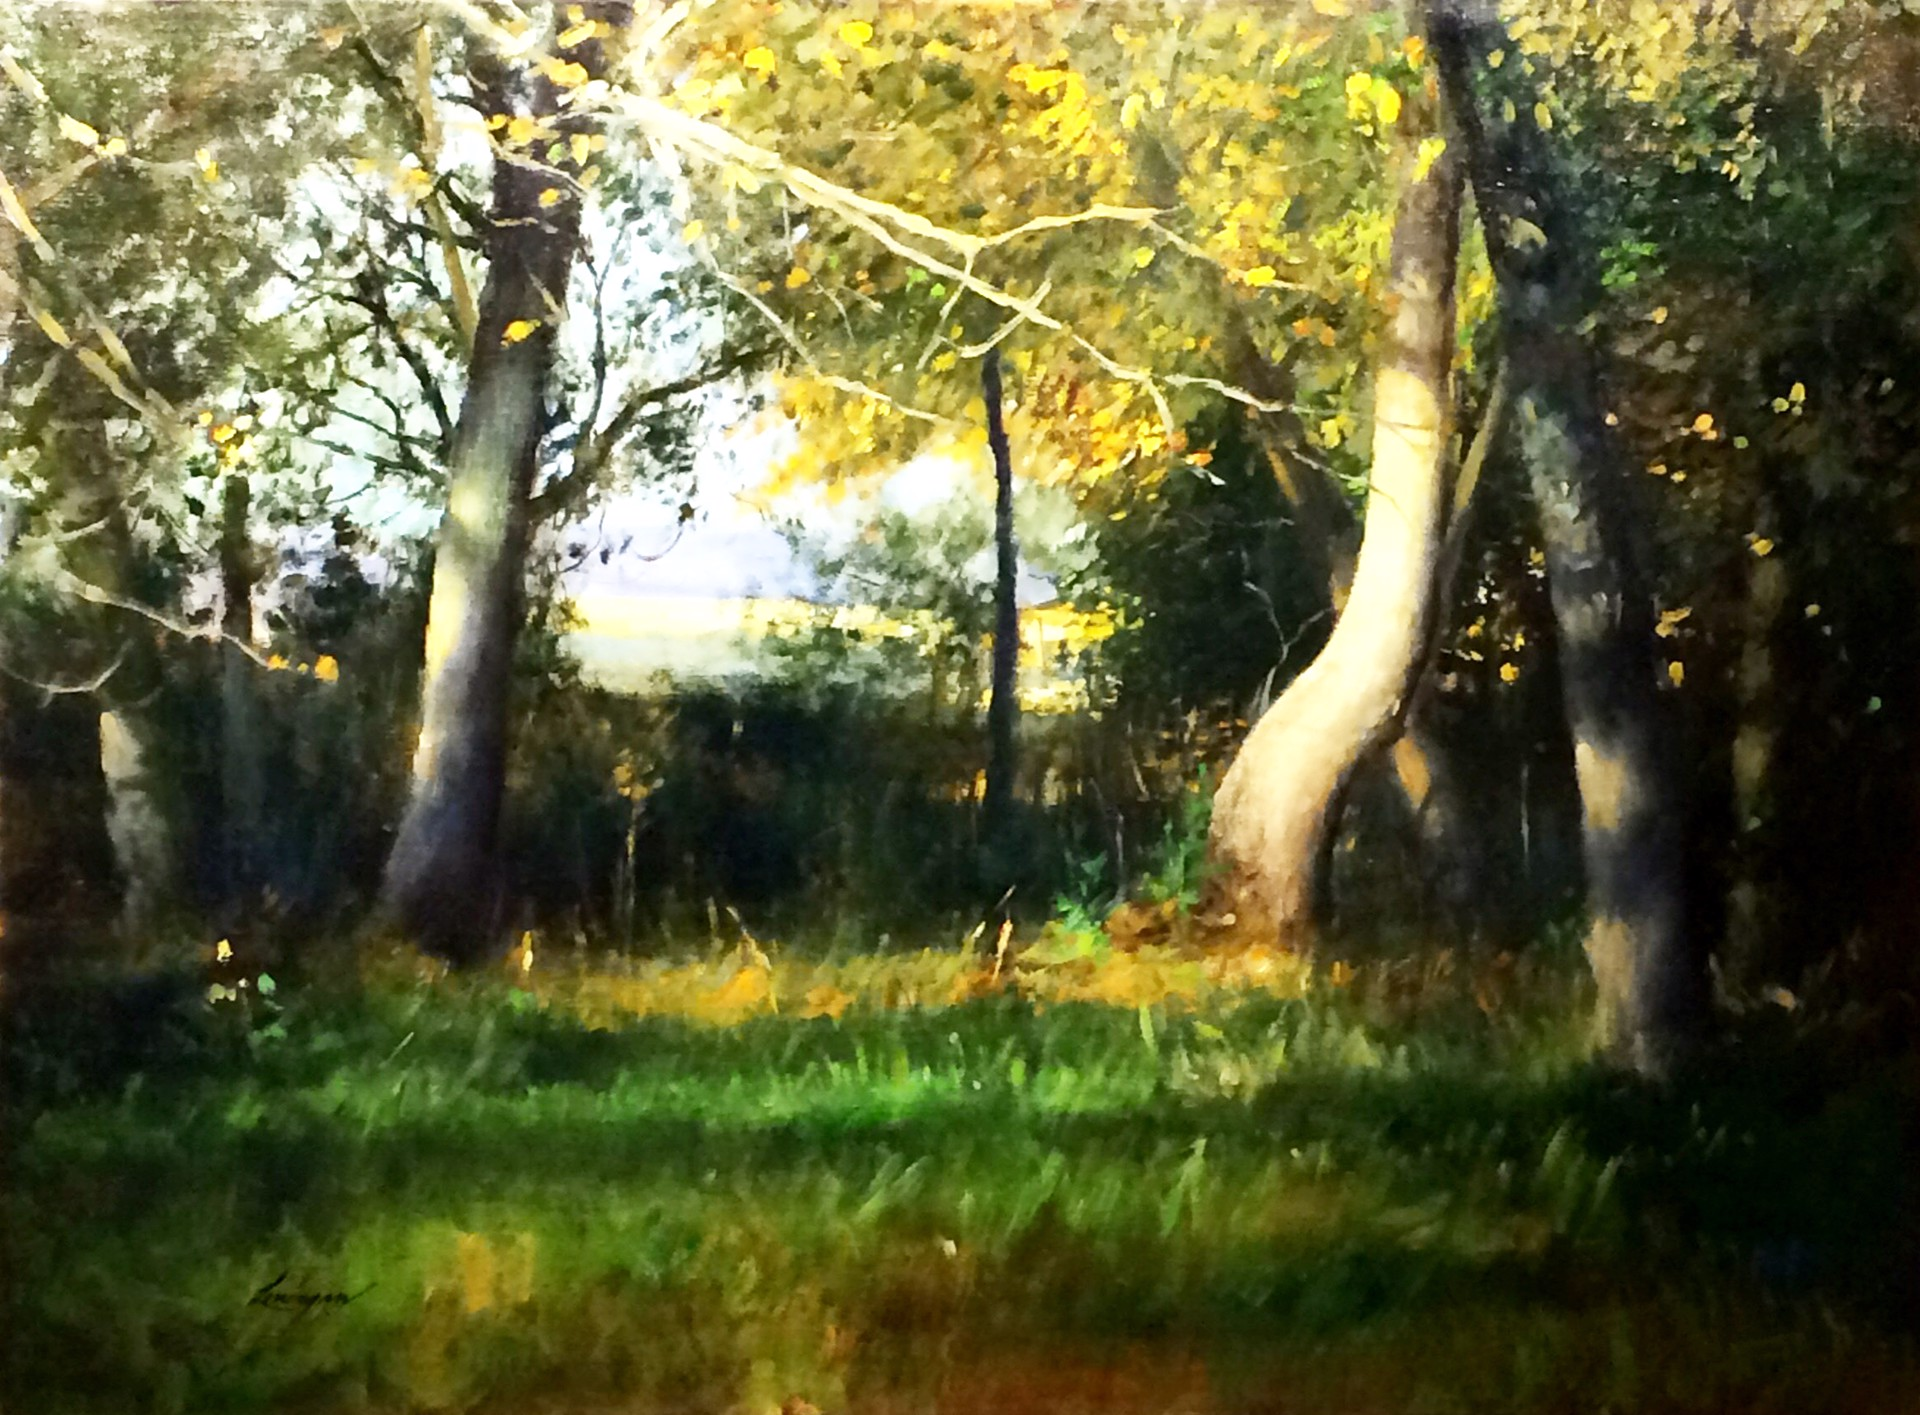 Morning in the Woods by John Lonergan